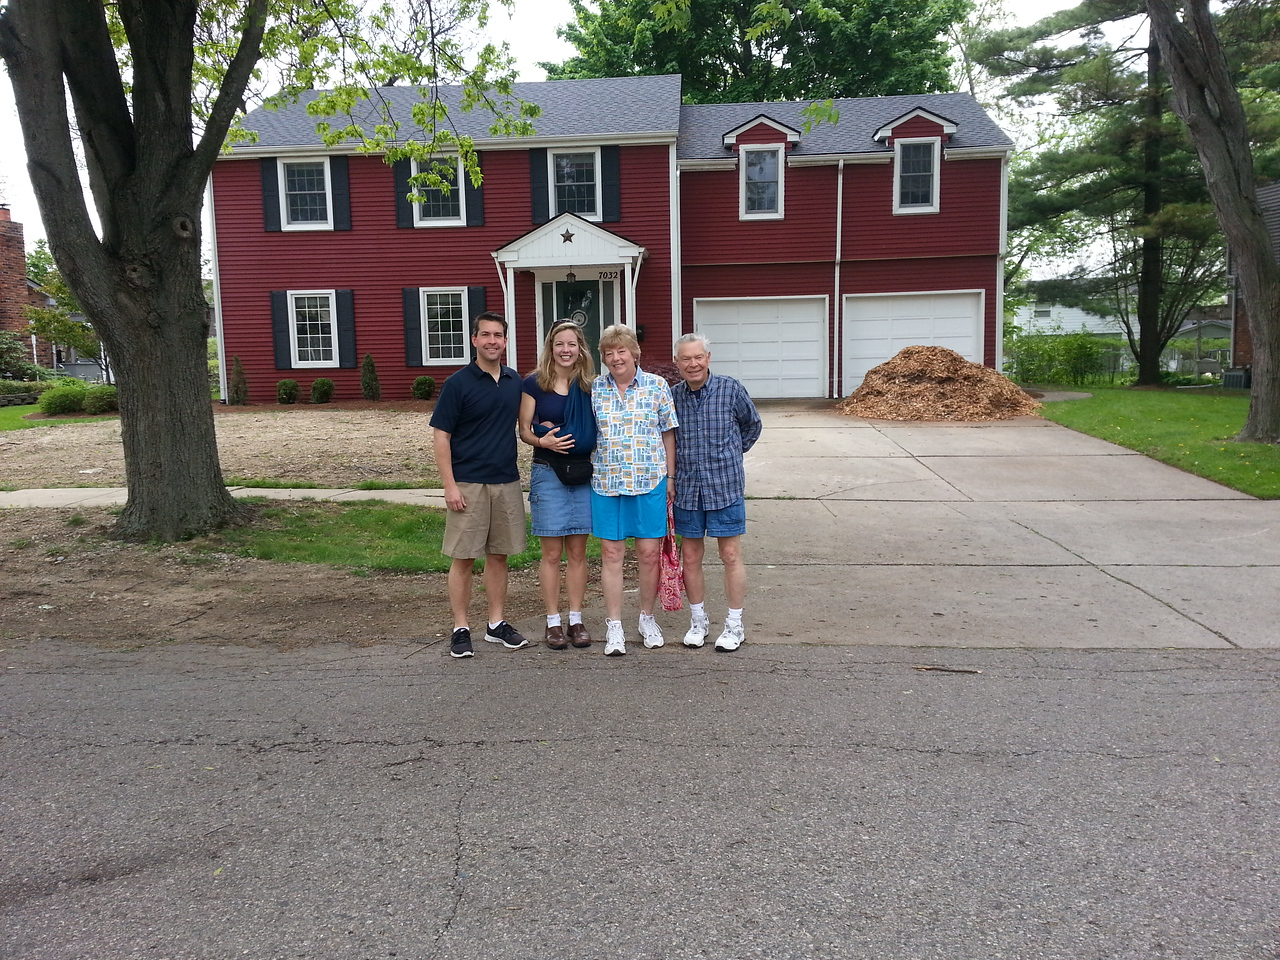 The house we stayed at in Michigan